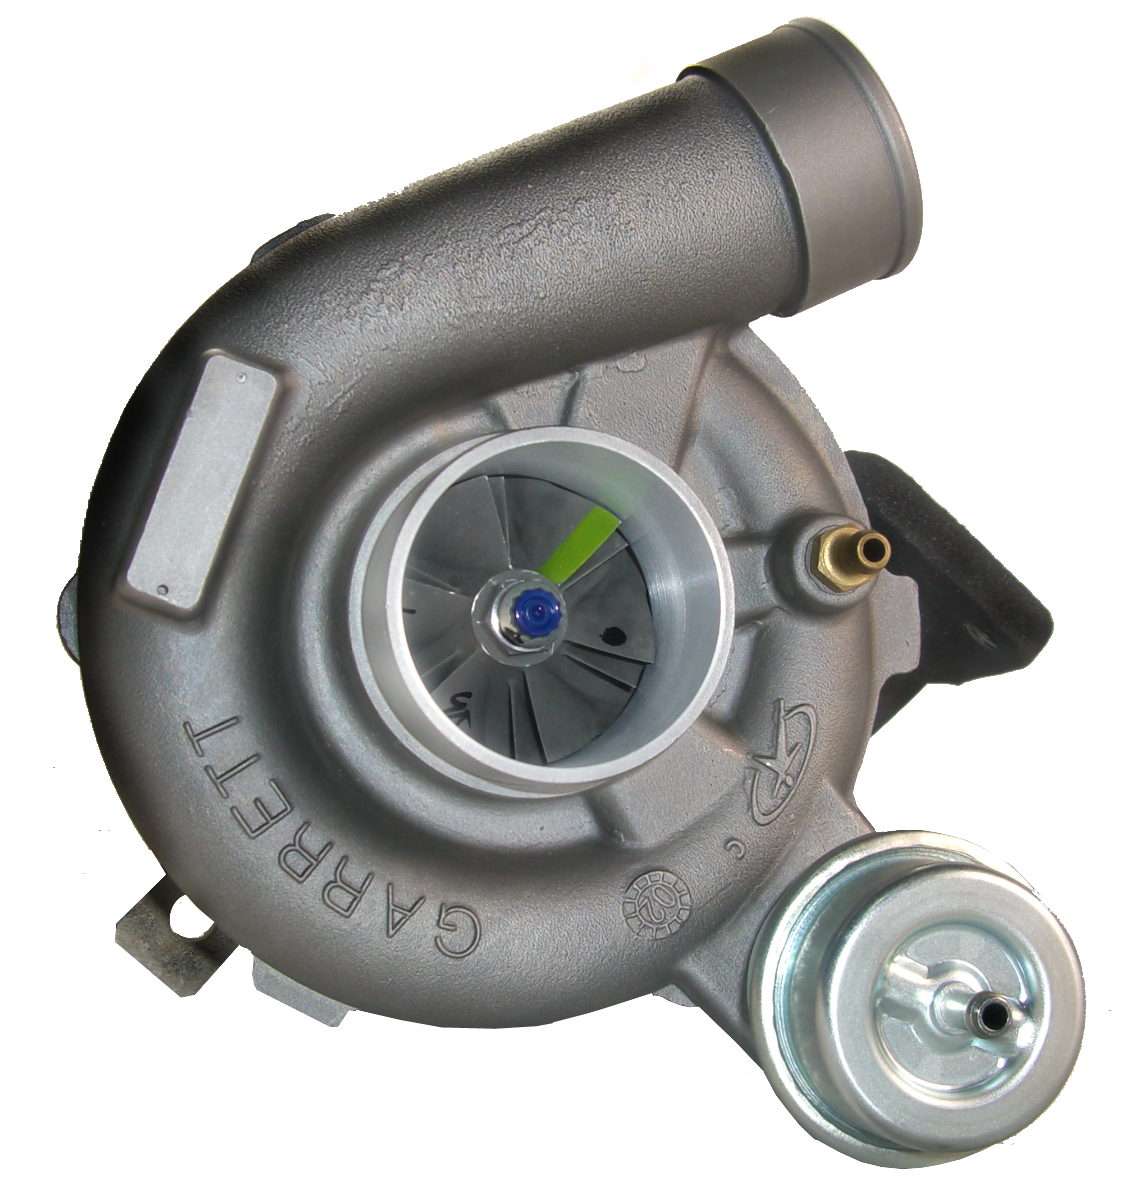 Md398r Stage 2 Hybrid Turbocharger For Ford Focus Rs